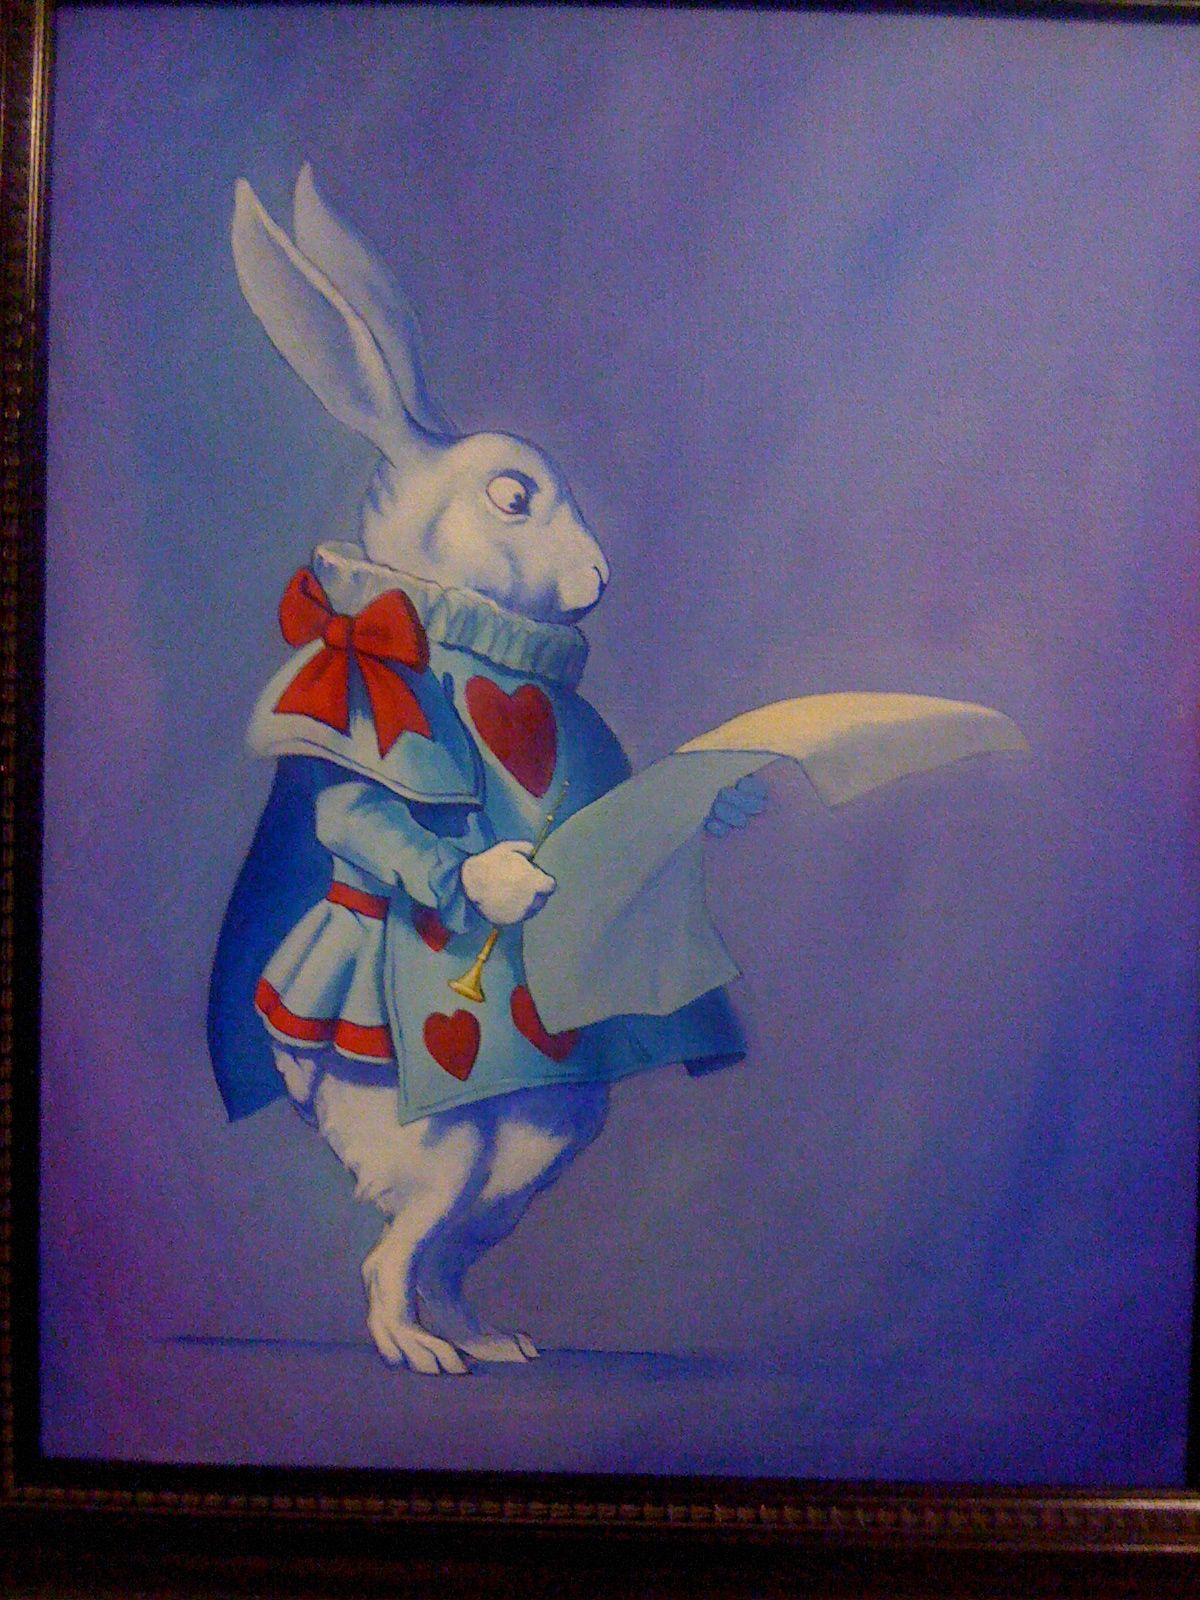 Alice in wonderland collection, Painted By one of my clients.  Price, consultations & request please contact me for more details